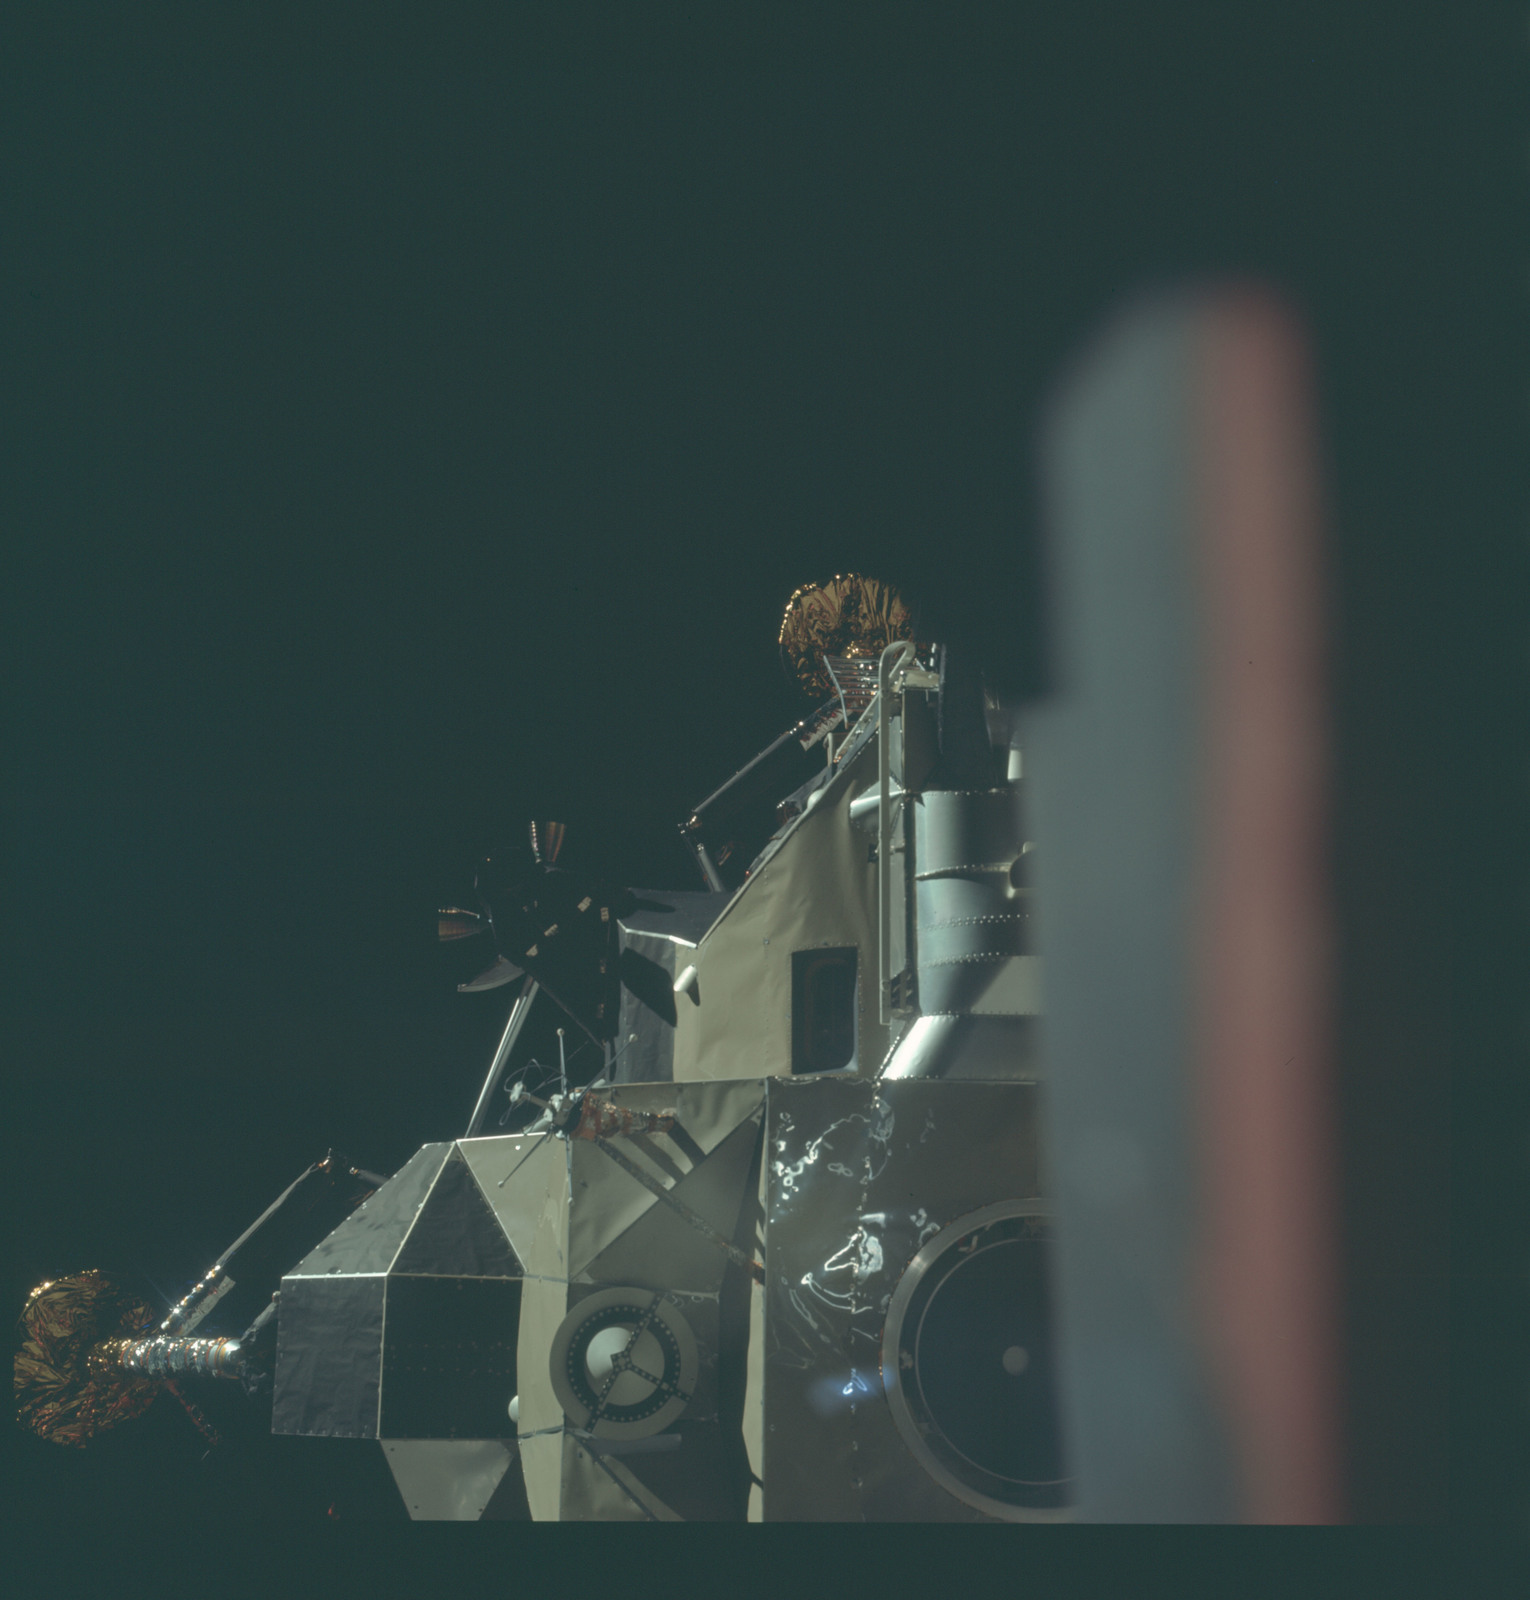 AS11-44-6567 - Apollo 11 - Apollo 11 Mission image - View of Lunar Module separation from the Command Module